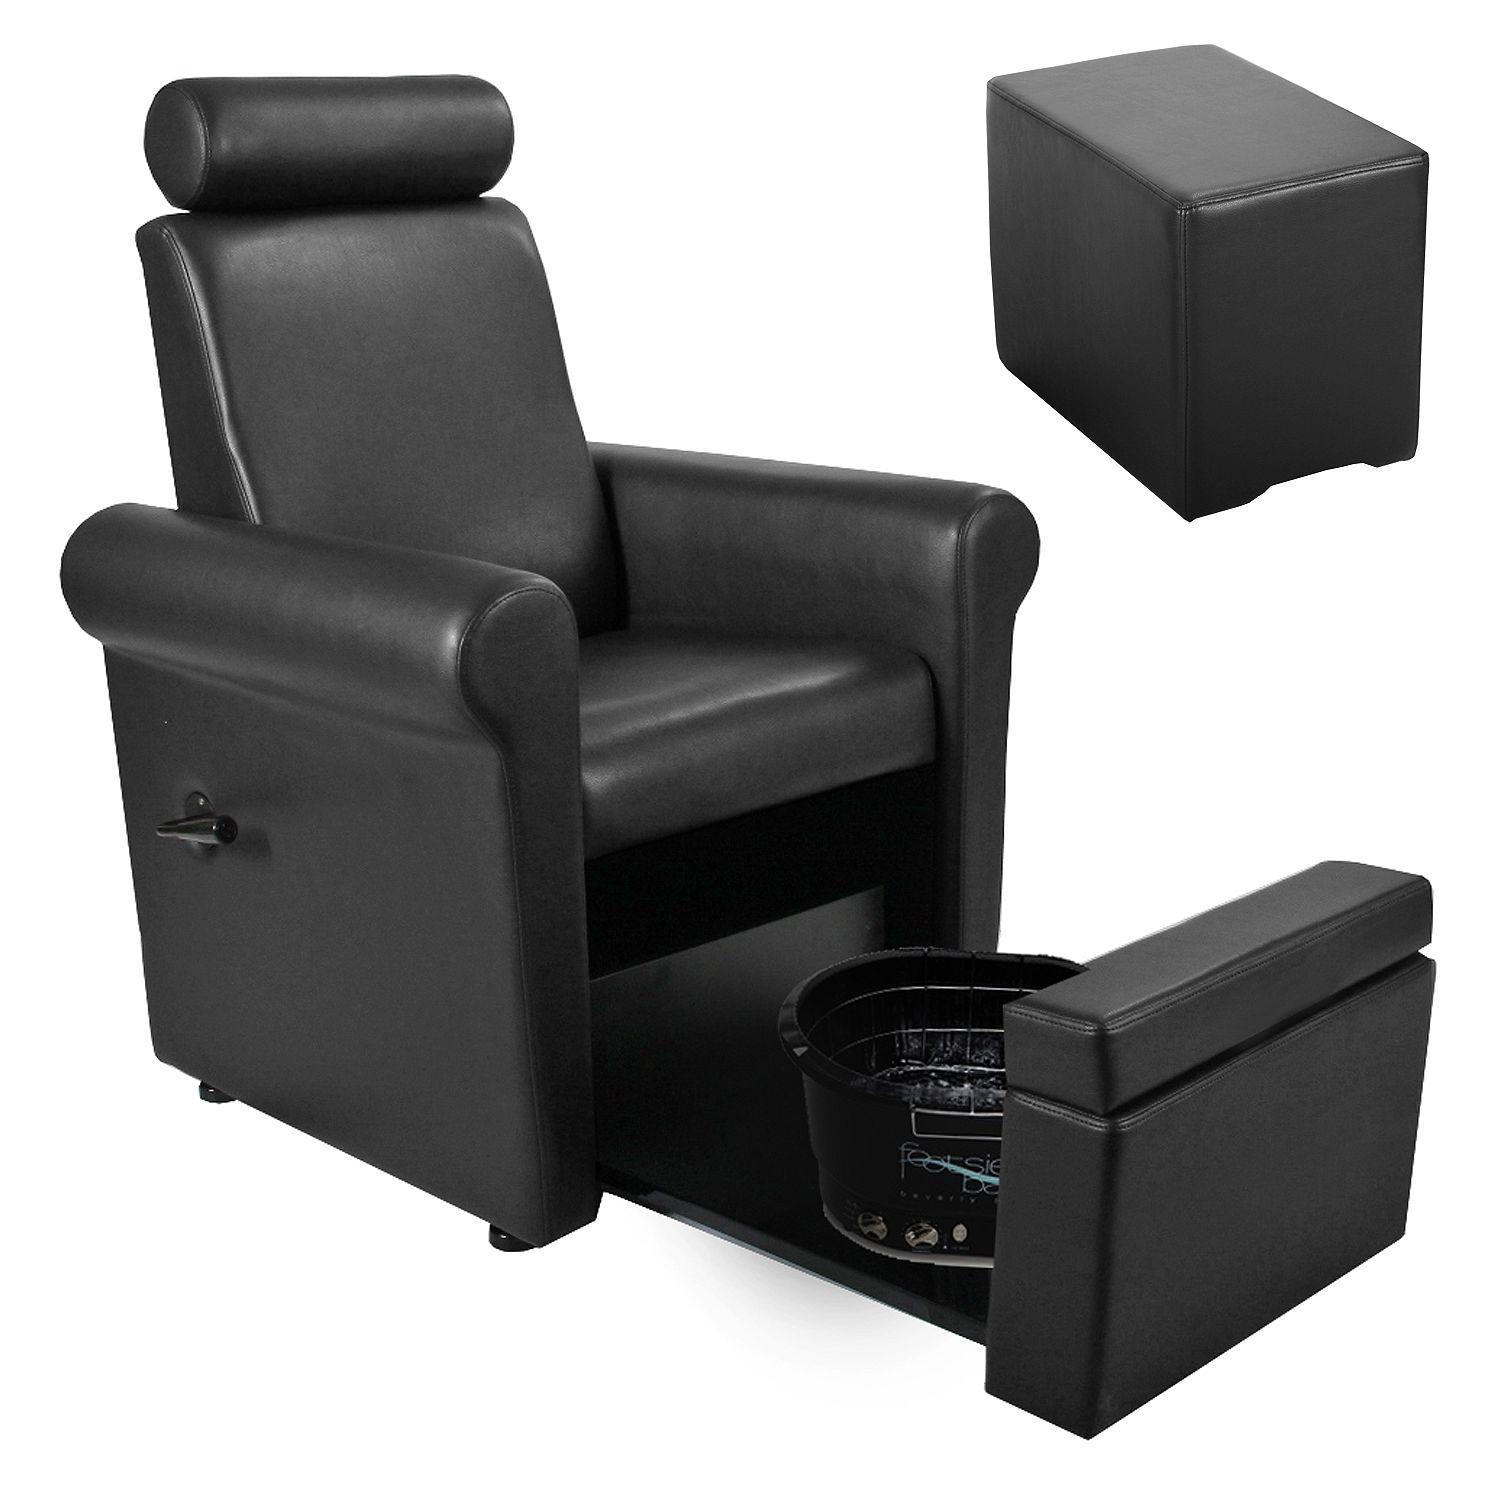 Nail Salon Chairs Keller Independence Pedicure Spa Chair Stool And Footsie